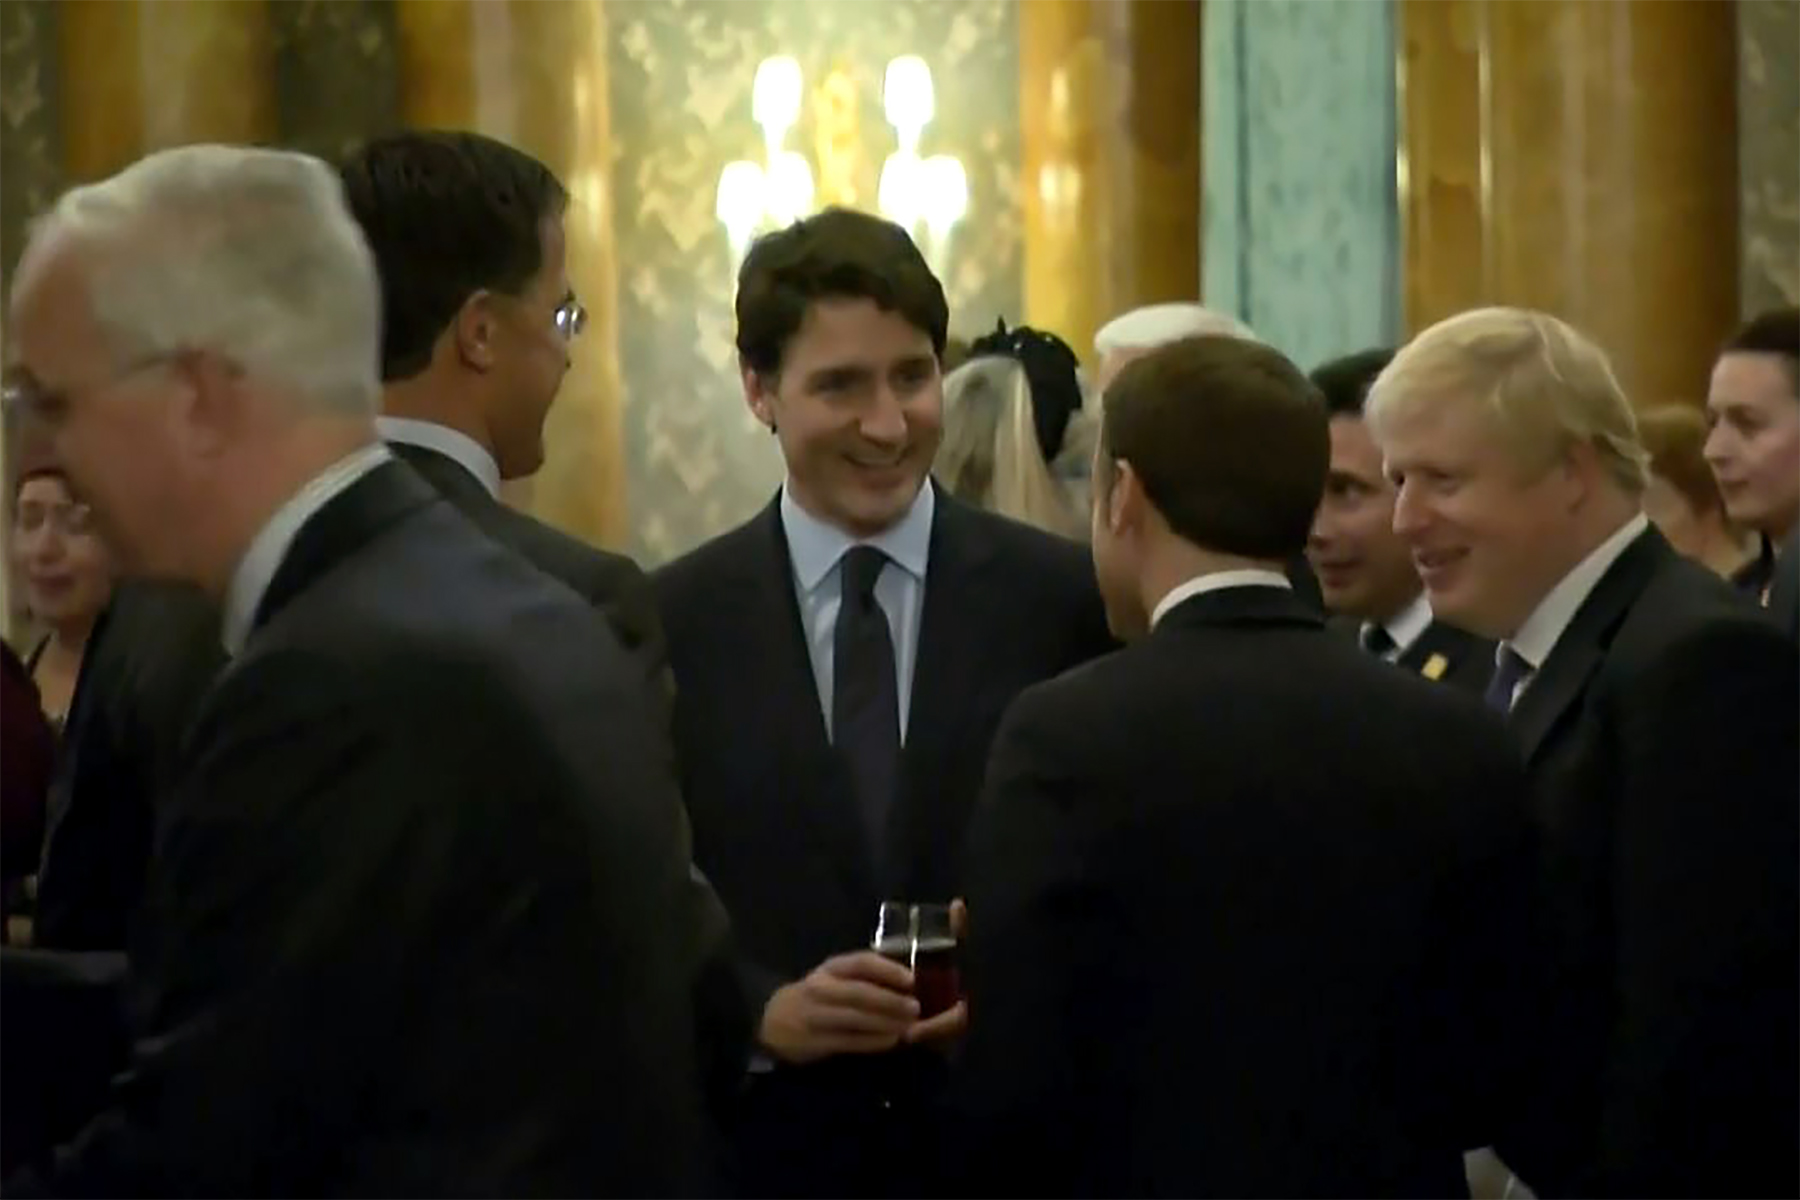 This screenshot from a video shows Dutch Prime Minister Mark Rutte, left, French President Emmanuel Macron, front, British Prime Minister Boris Johnson, right, and Canada's Prime Minister Justin Trudeau, back center, as the leaders of Britain, Canada, France and the Netherlands were caught on camera at a Buckingham Palace reception talking about President Donald Trump's lengthy media appearances ahead of the NATO summit on Dec. 3, 2019 in London. (Credit: NATO TV/AFP via Getty Images)